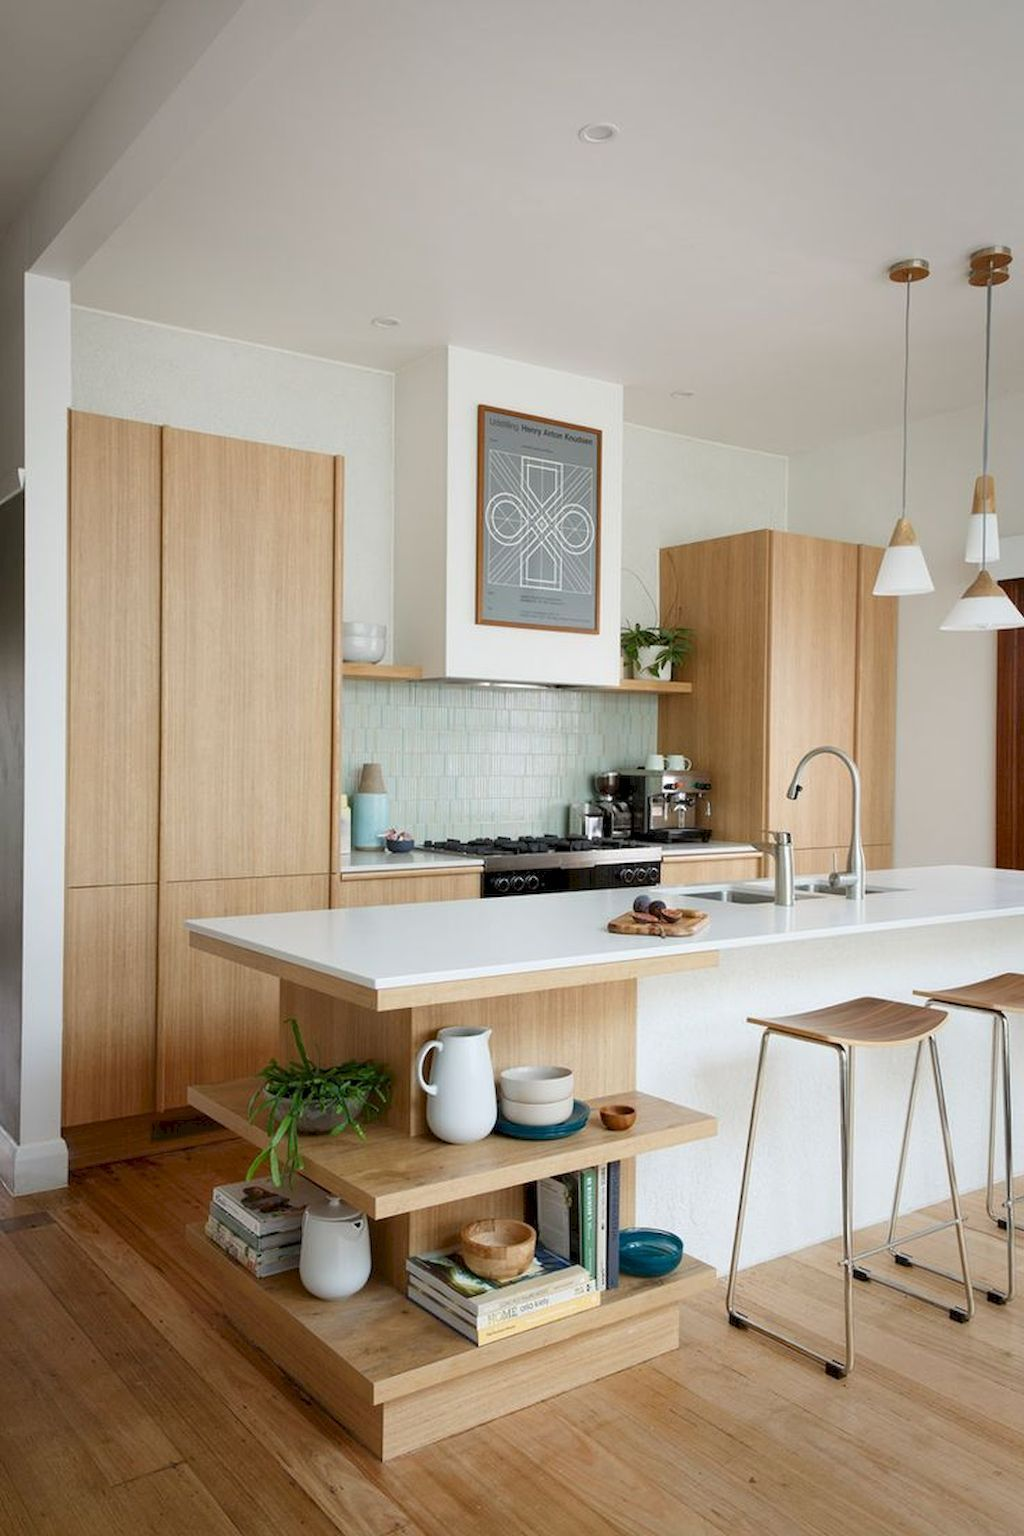 Mid century modern kitchen design ideas also for the home rh pinterest